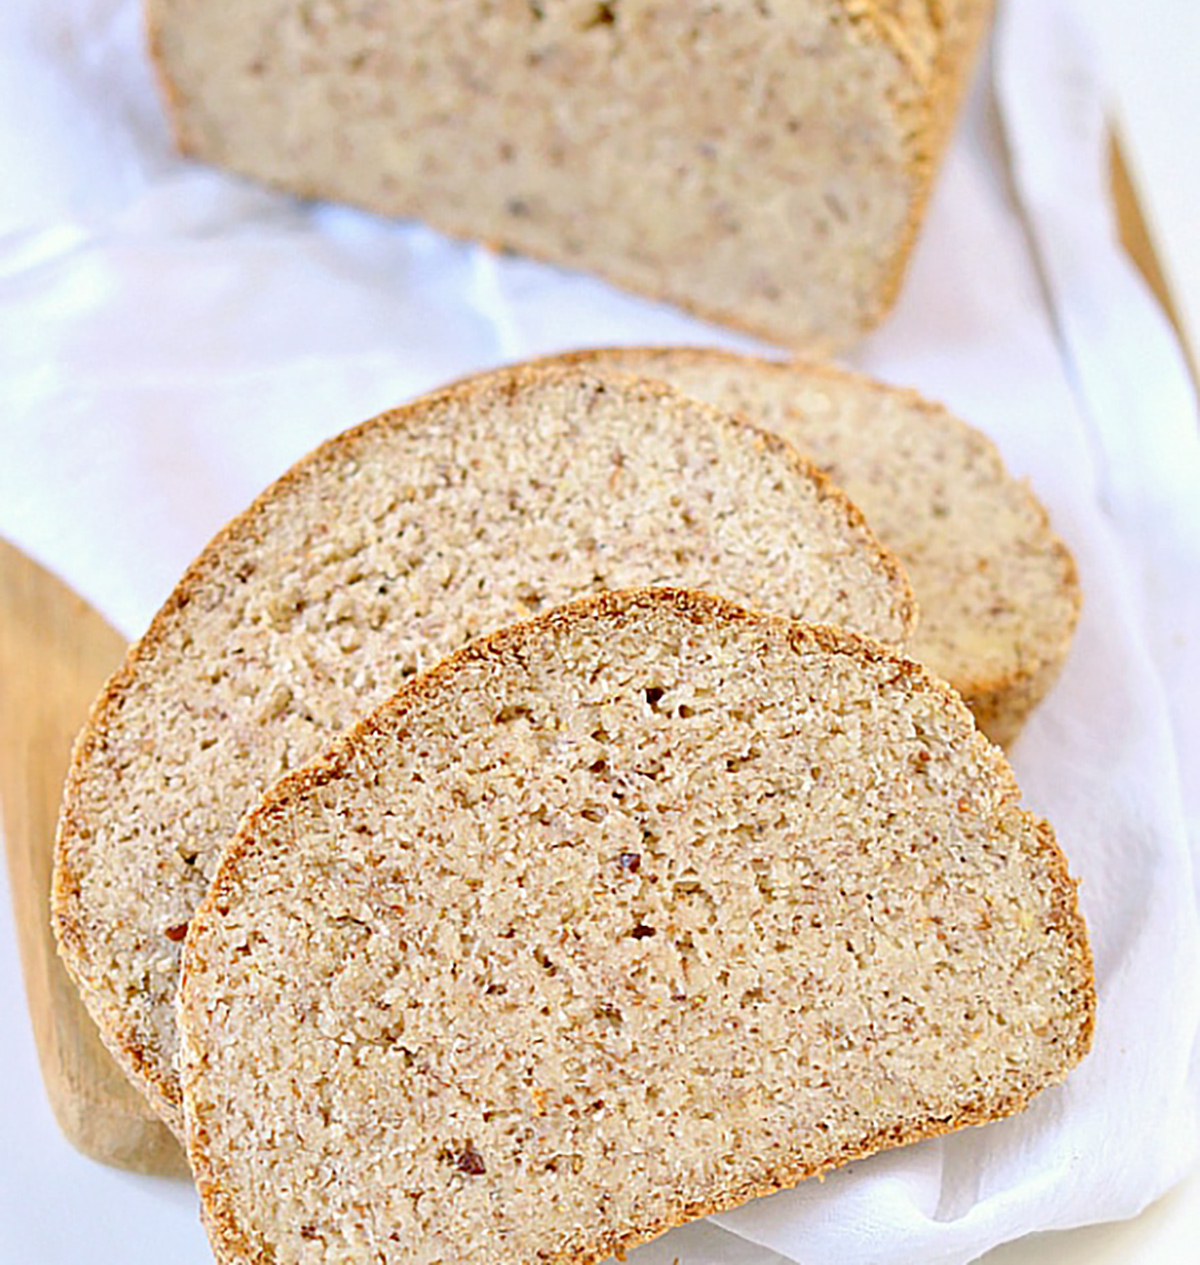 Keto vegan bread loaf and slices from